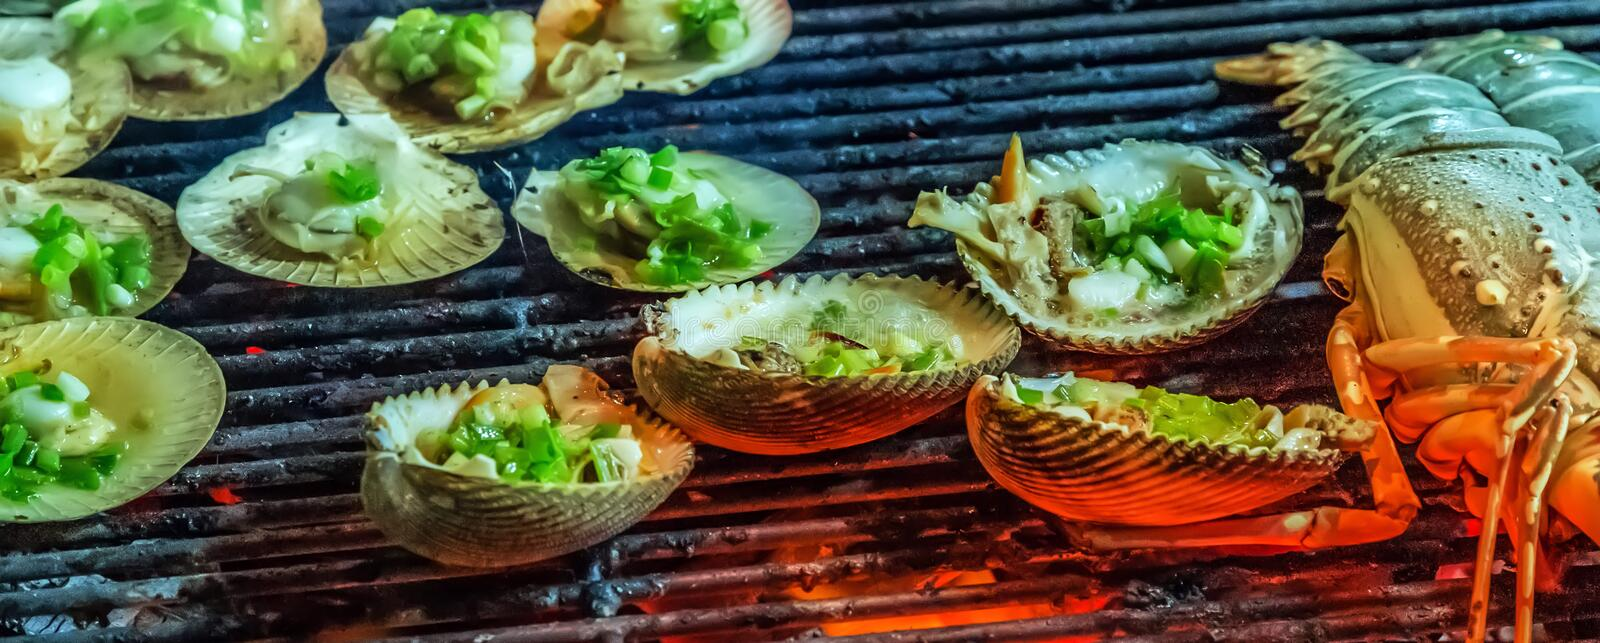 Muscle mussel oyster grilling steamed barbecue. Cooking bbq Food Background royalty free stock photo